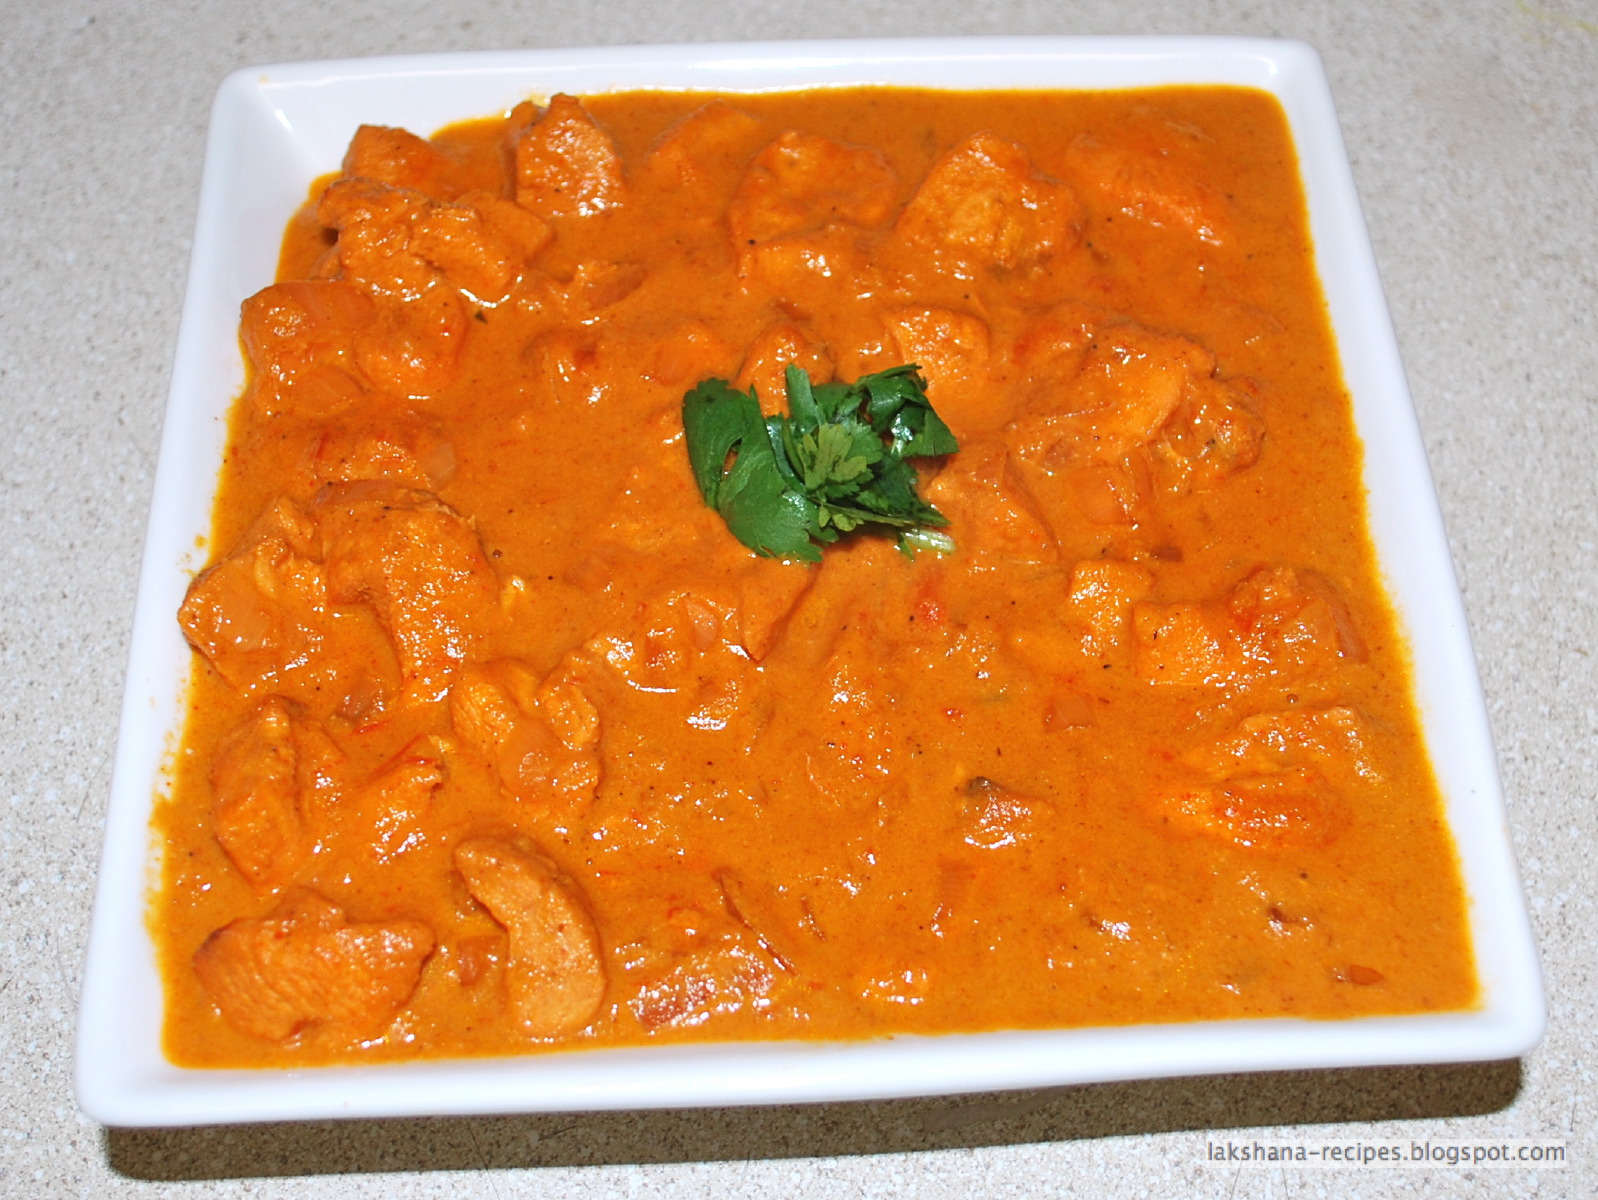 Tikka+masala+recipe